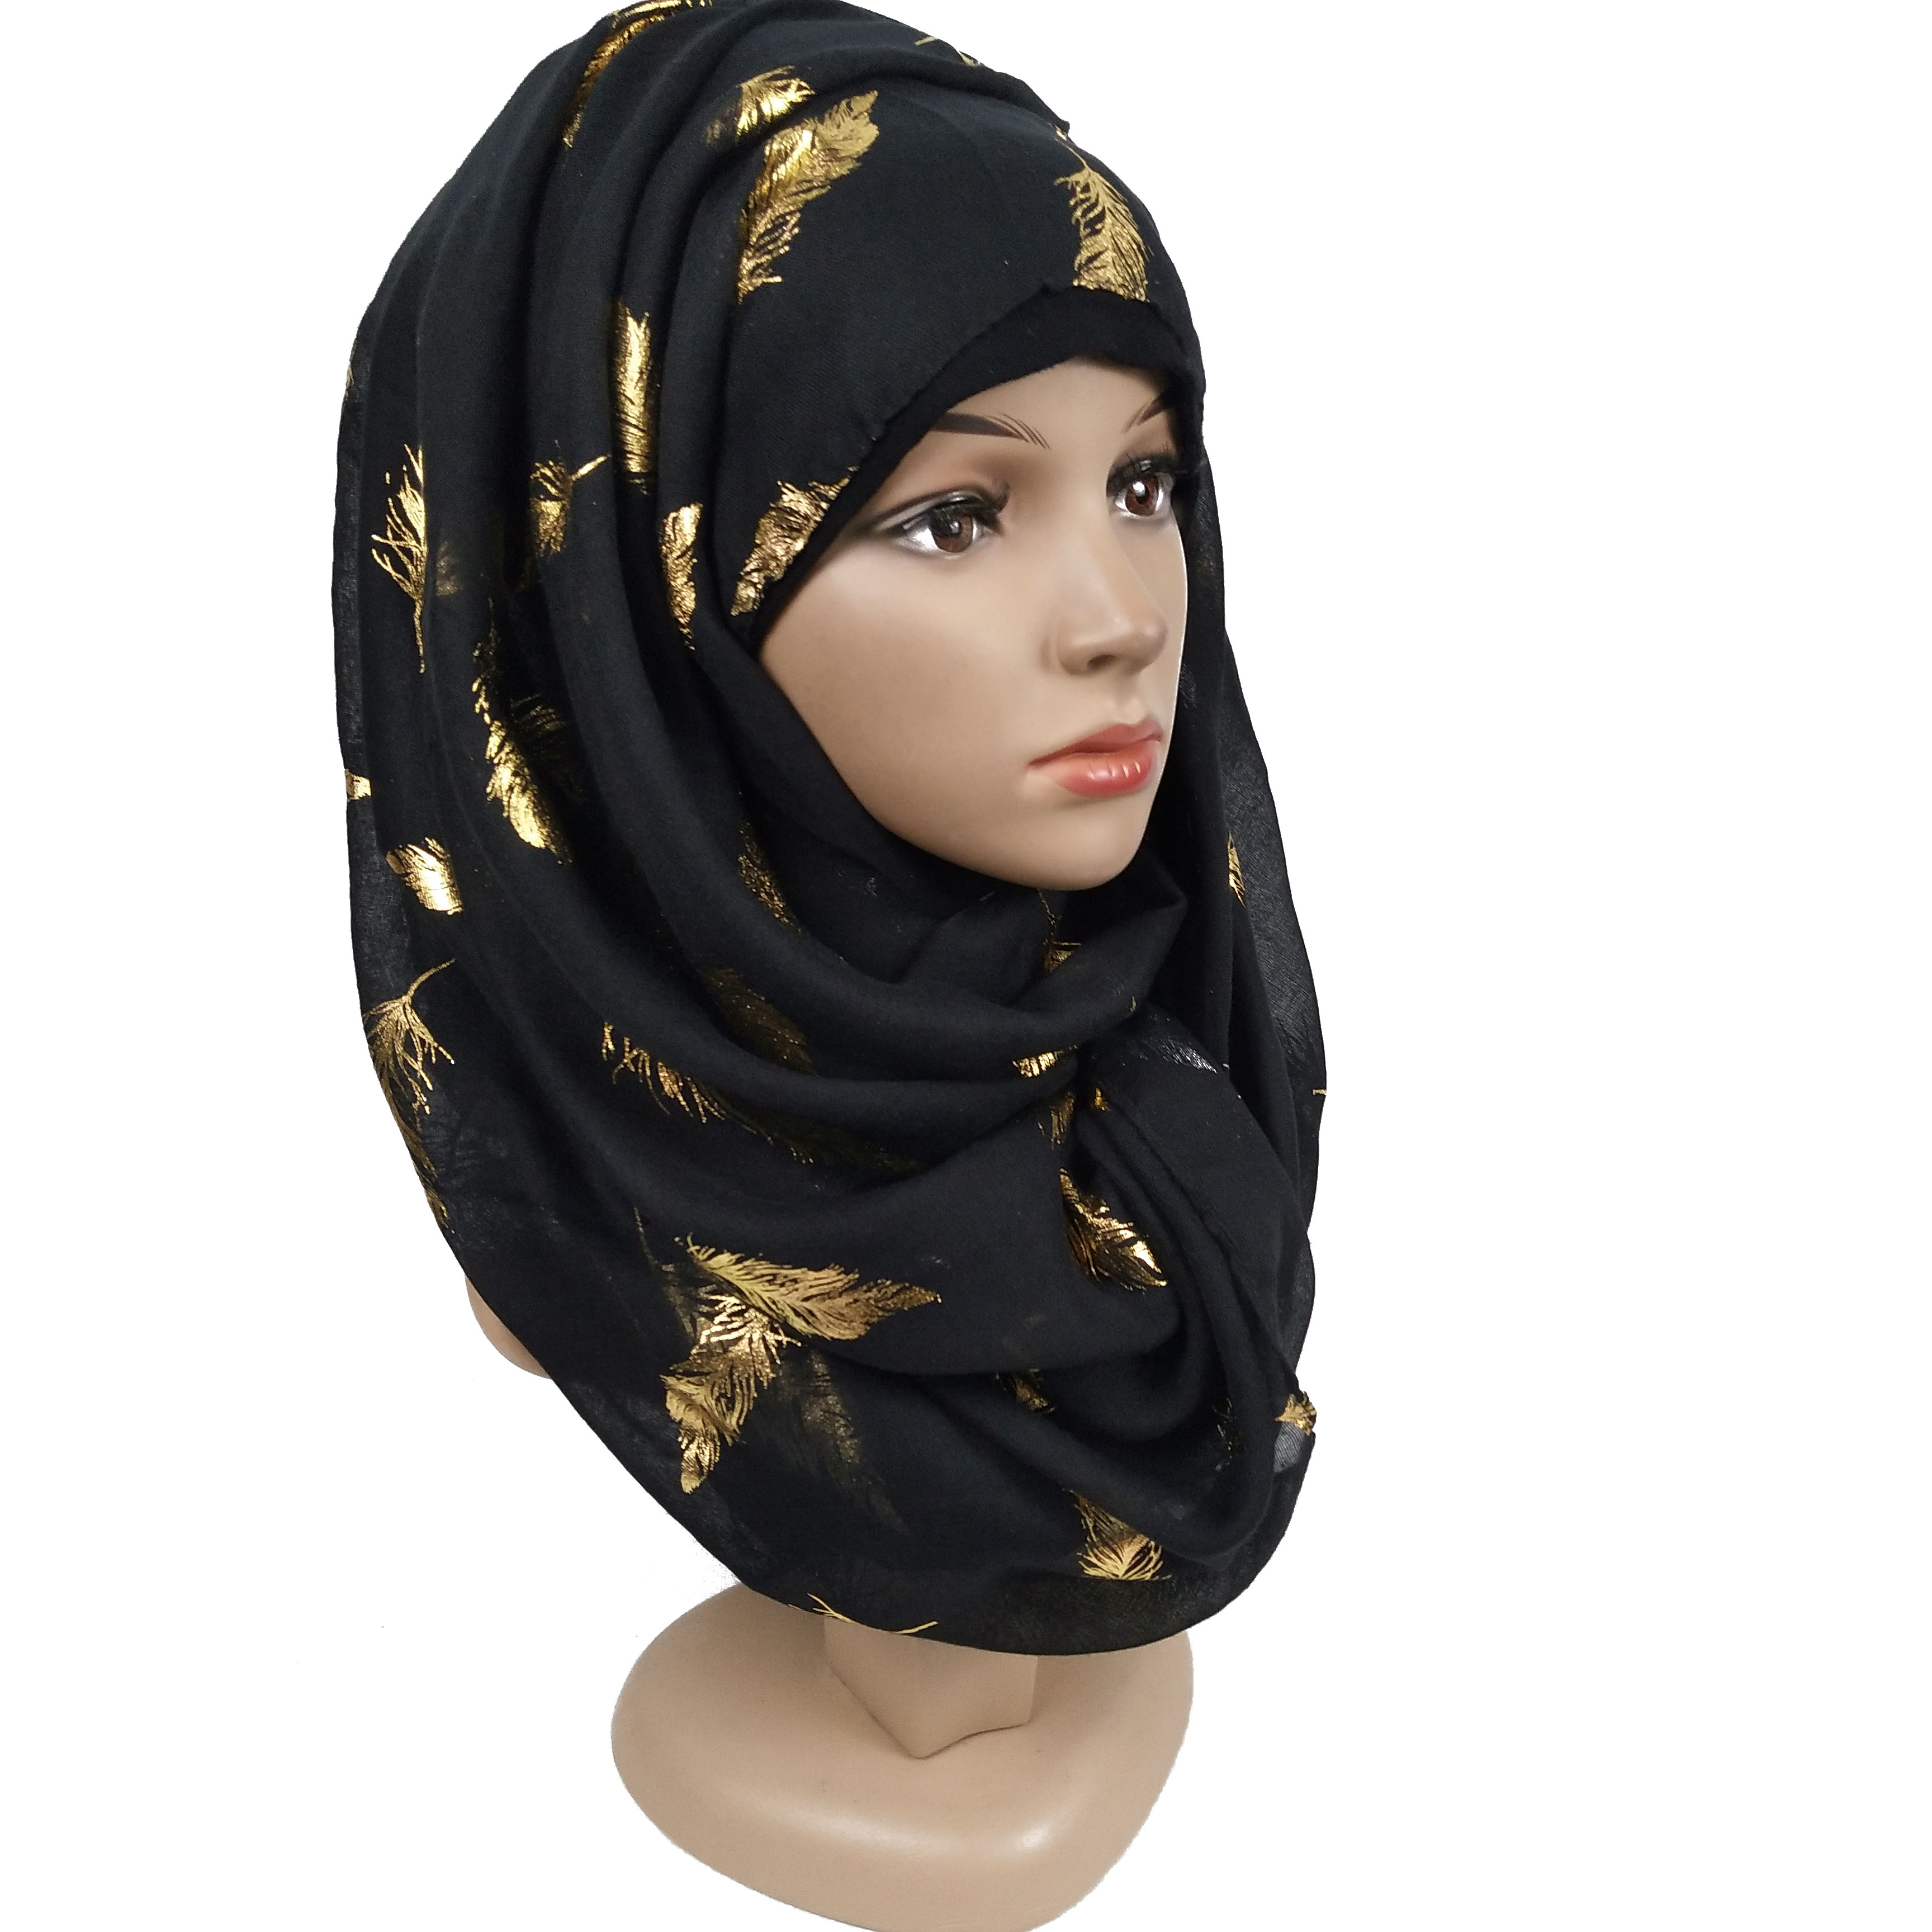 D93 10pcs High quality shinny sleeves scarf/scarf flower cotton hijab women shawl lady muslim headband wrap can choose colors